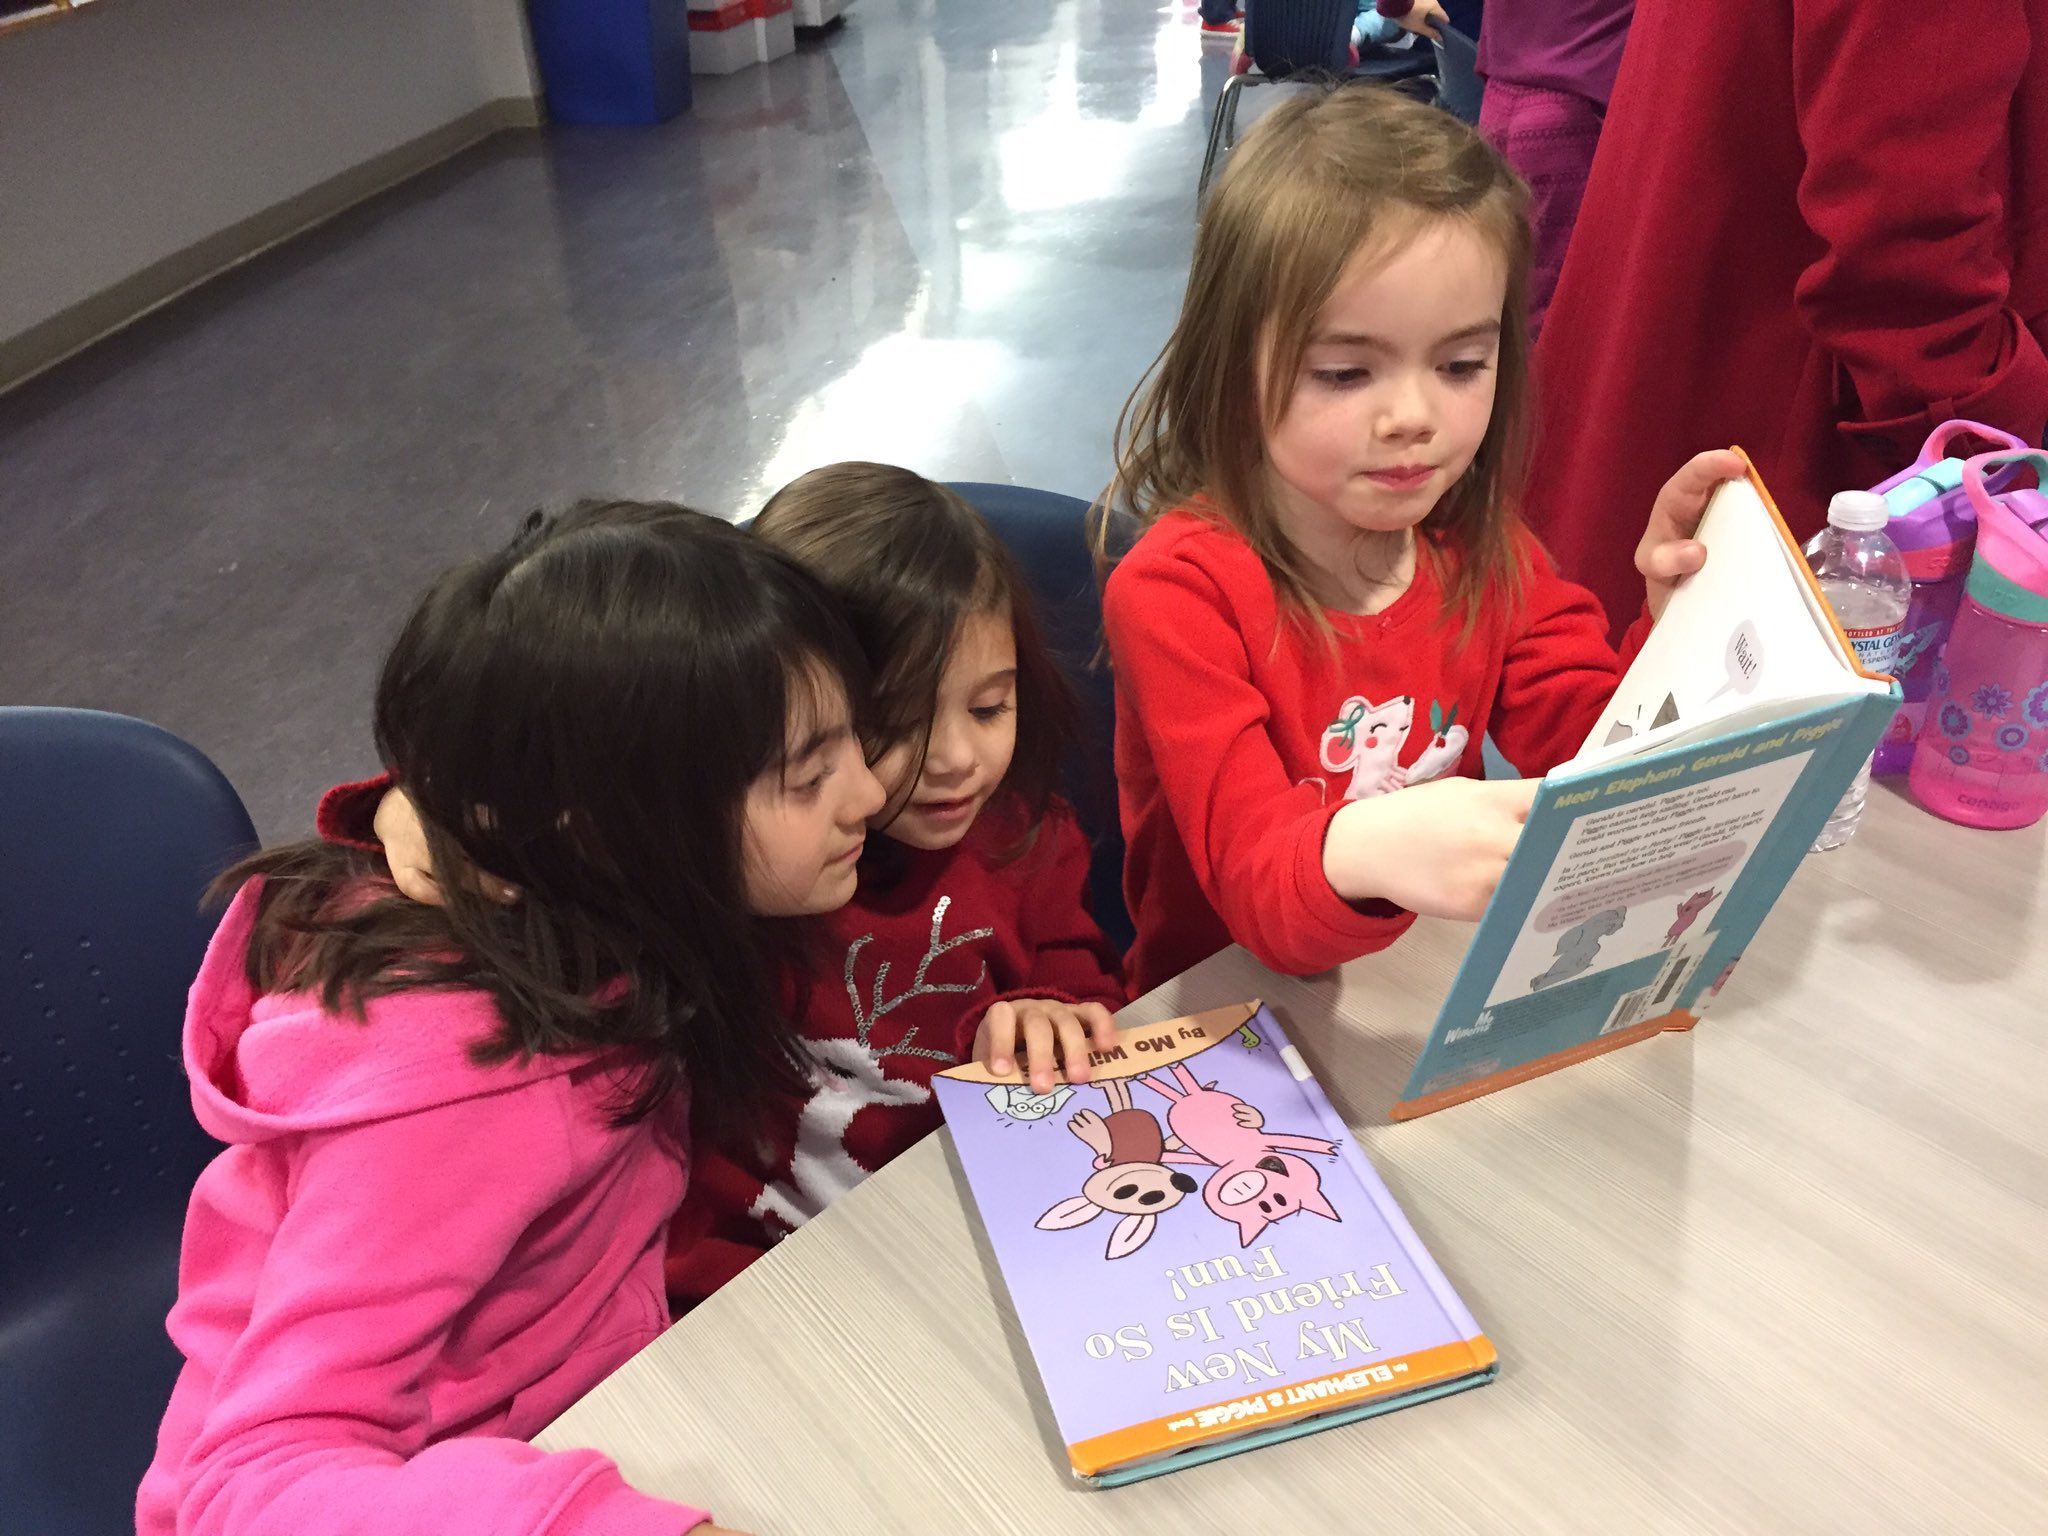 Lower School students reading to each other at Literacy Night #myflinthill #ericaperl https://t.co/NwiKdVSlem